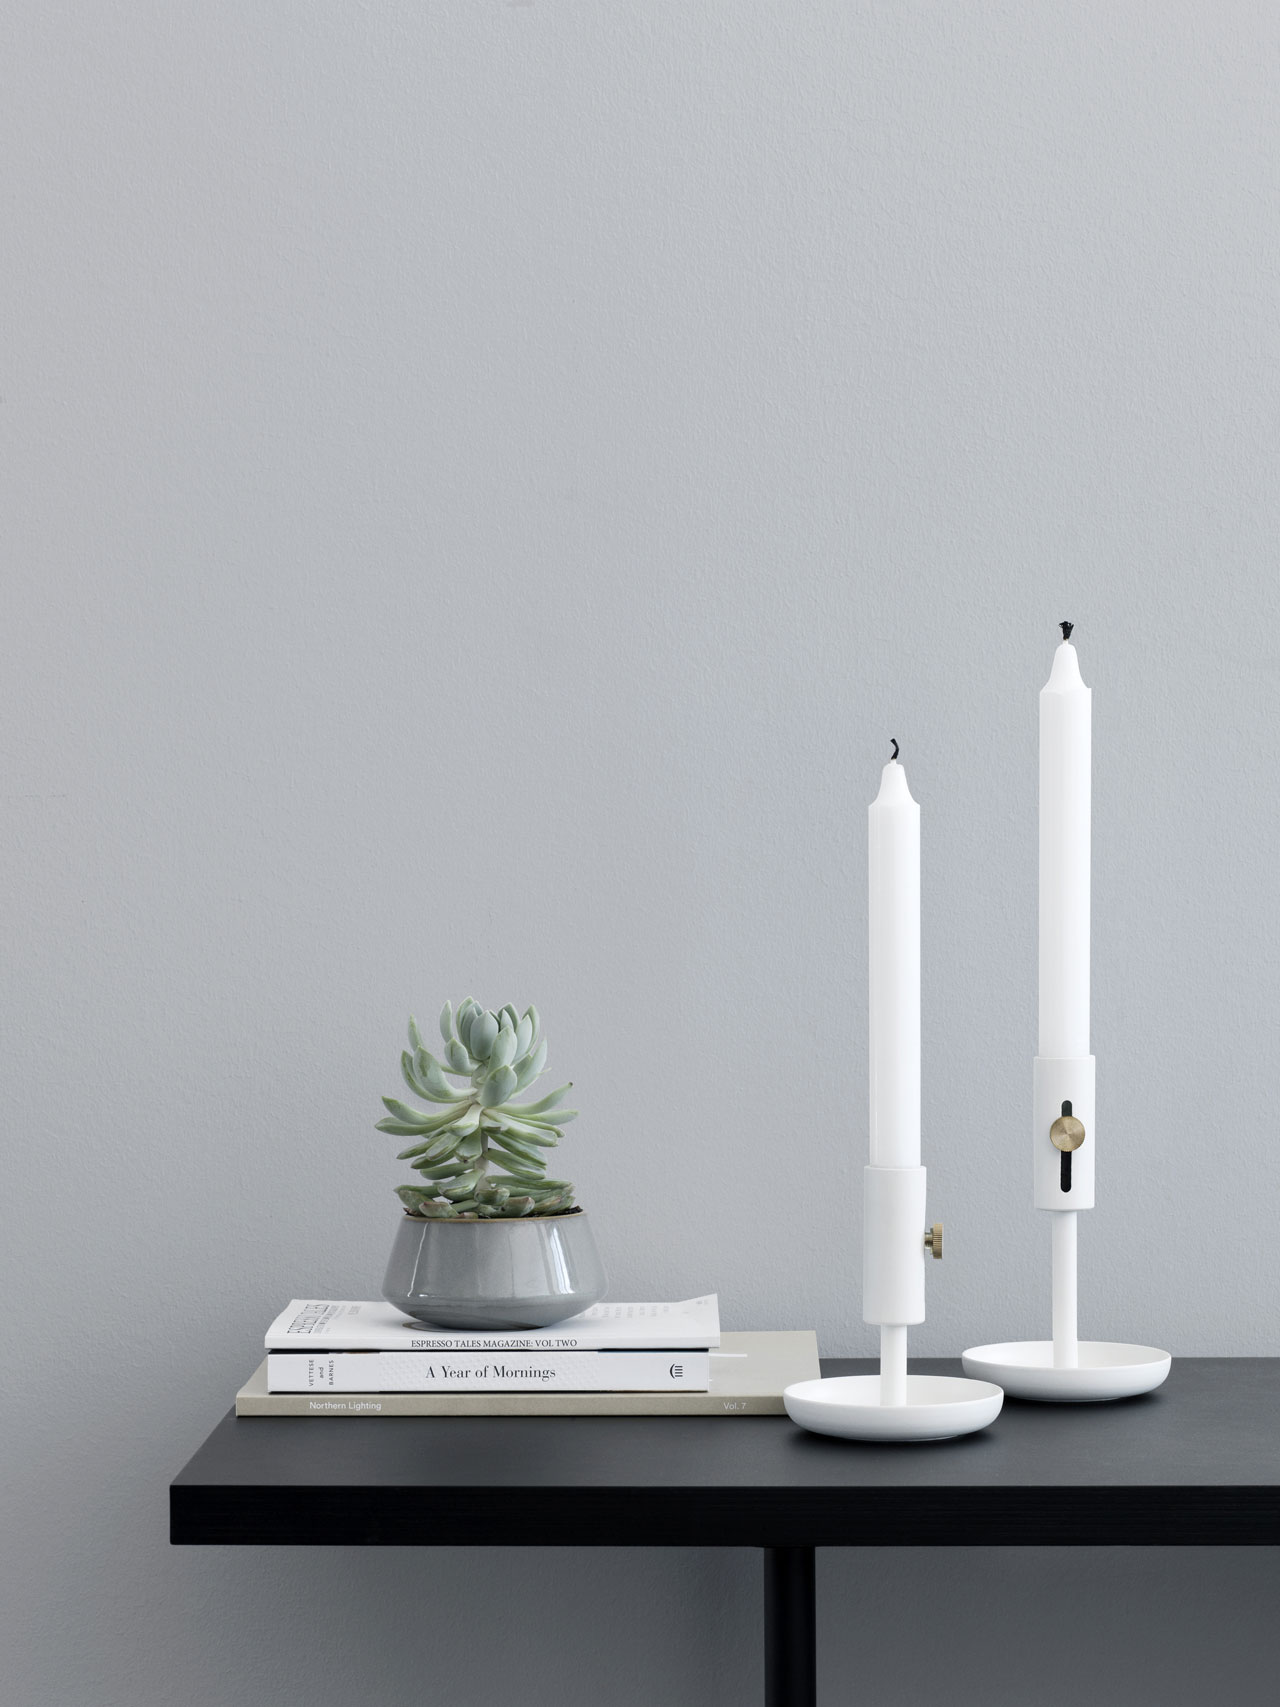 Granny candlestick by Rudi Wulff for Northen Lighting. Photo by Chris Tonnesen.